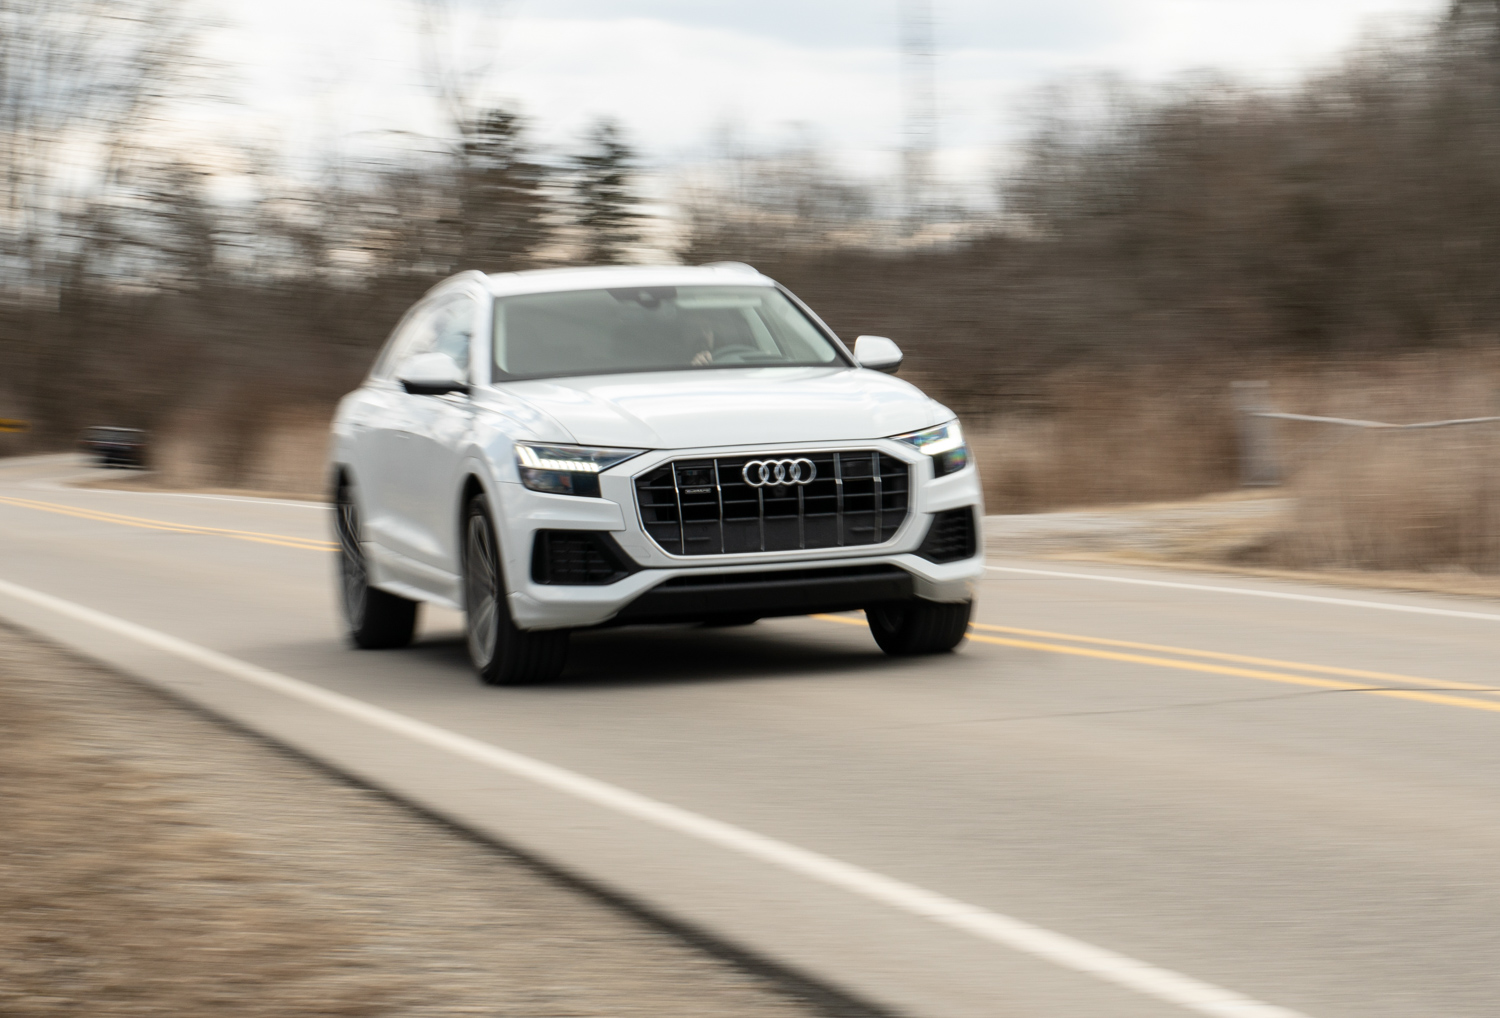 2020 Audi Q8 driving blurred